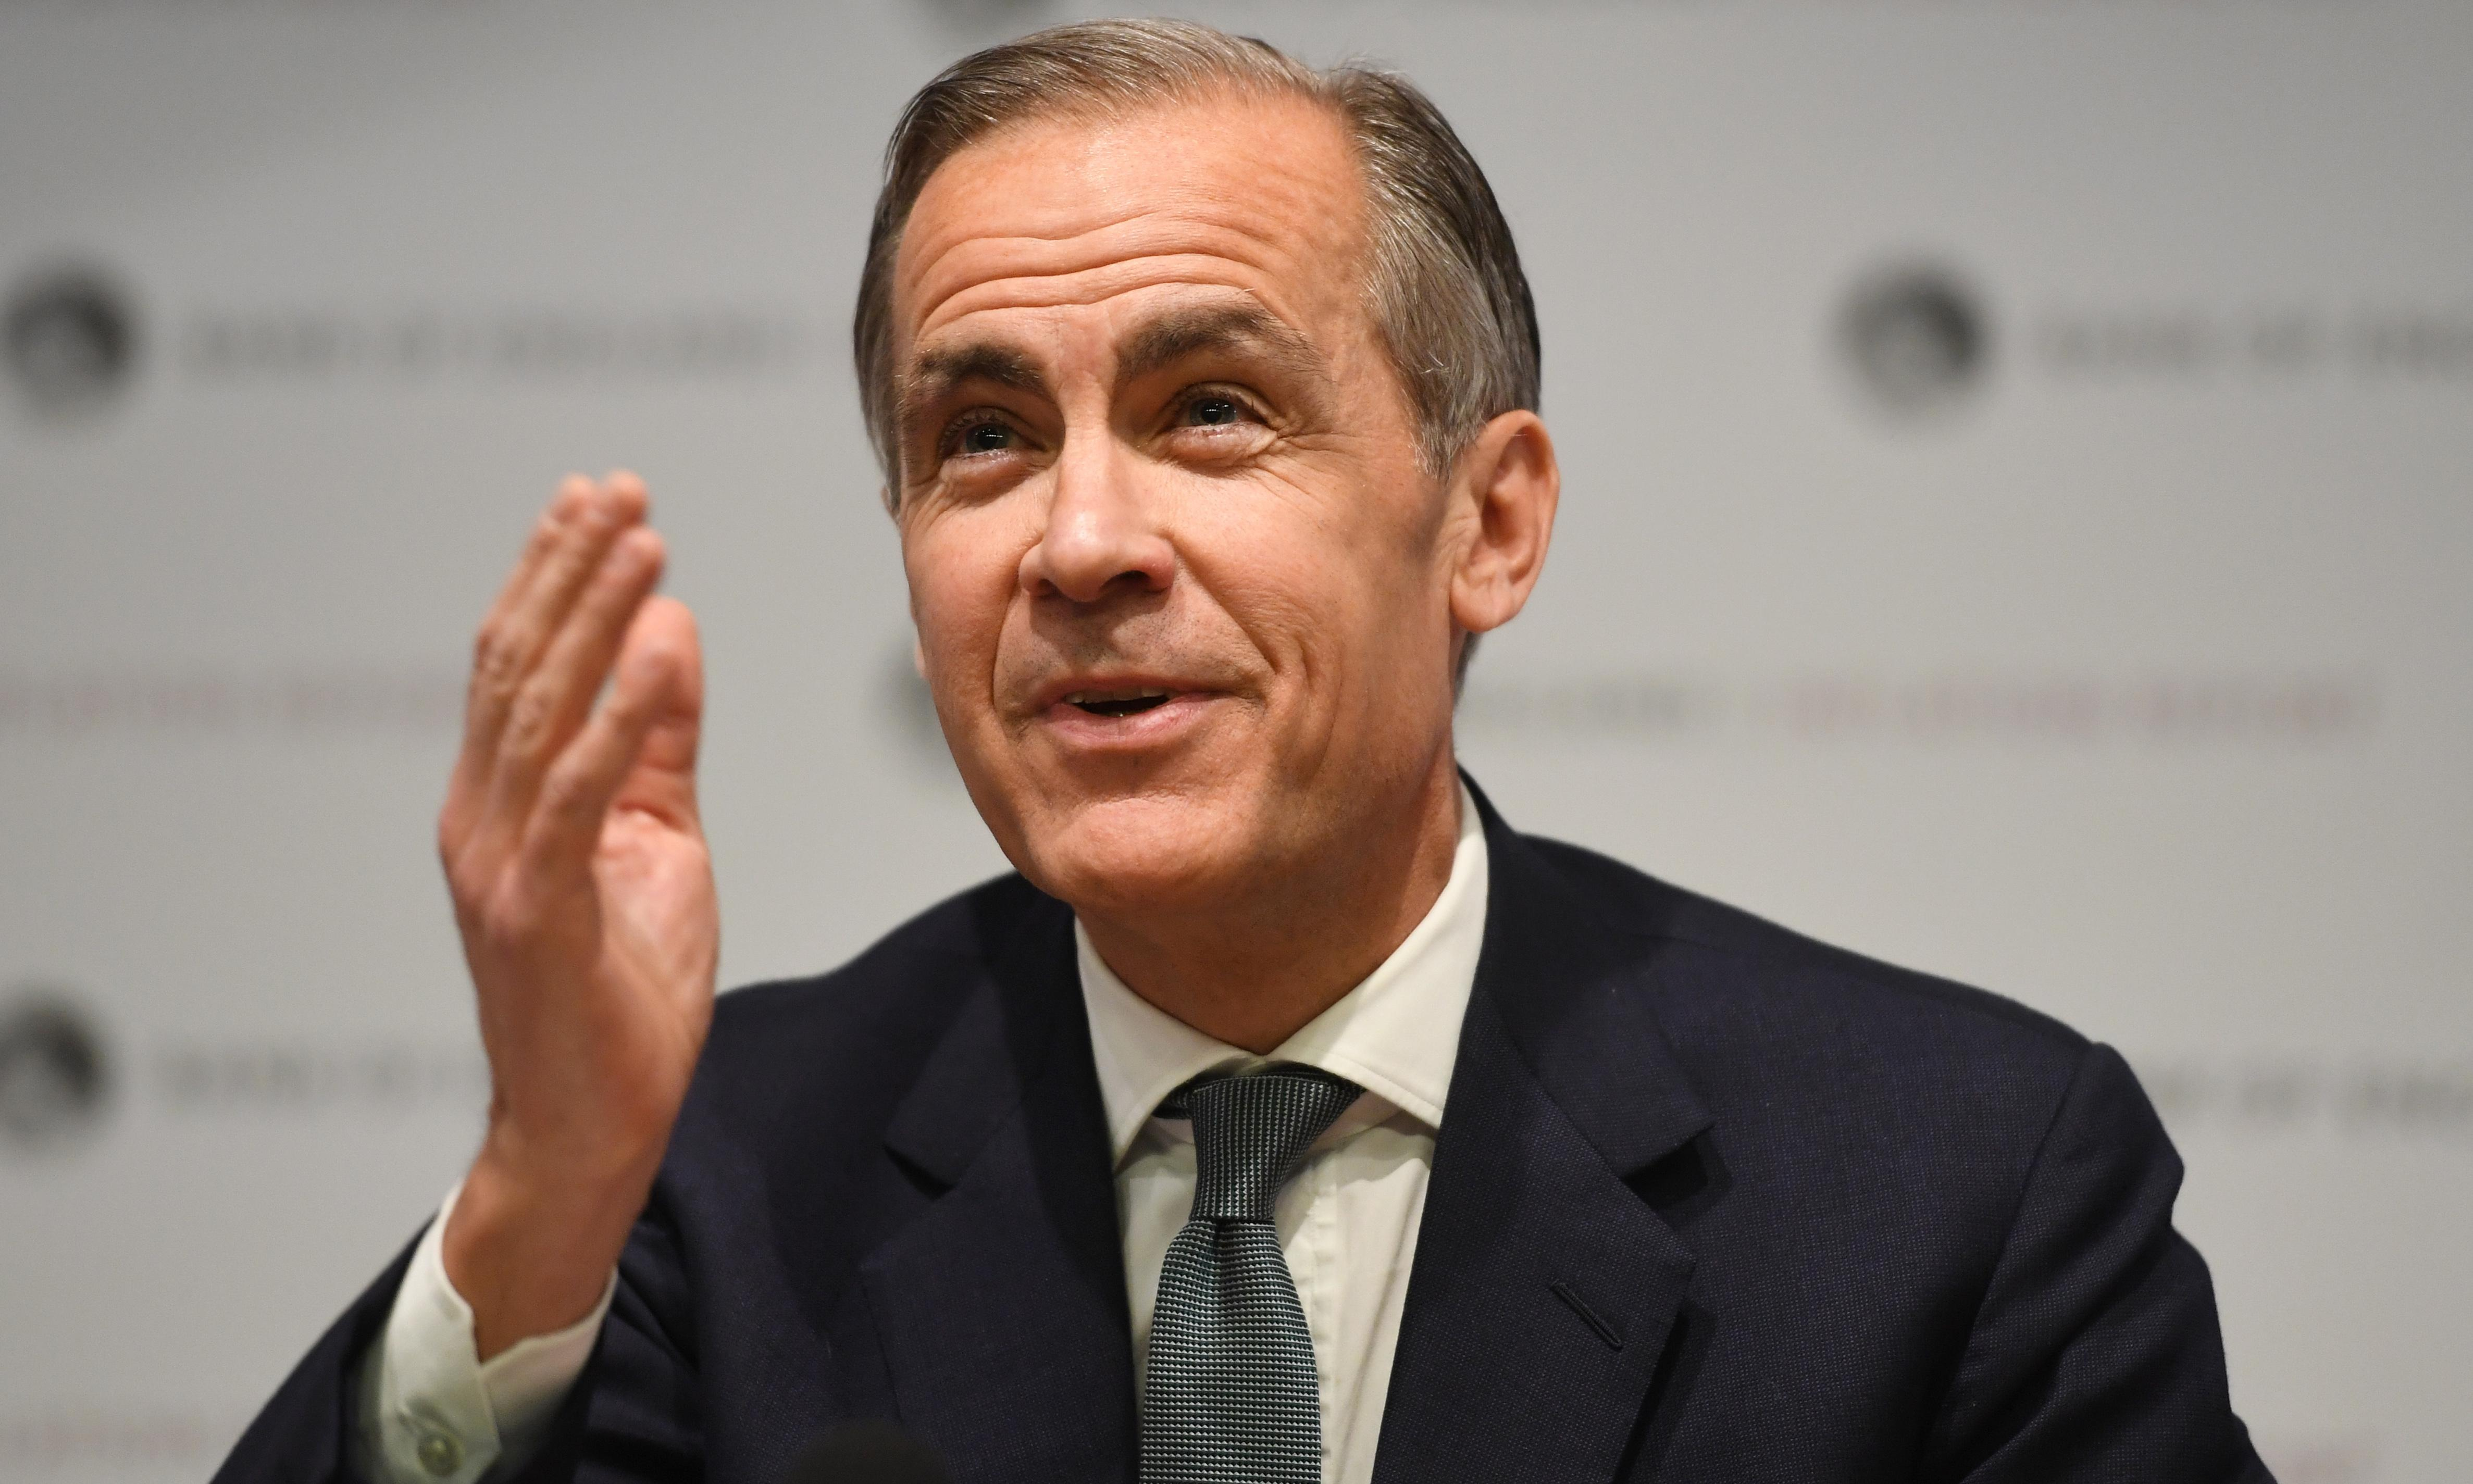 Mark Carney is looking unreliable again with misplaced enthusiasm for rate rises